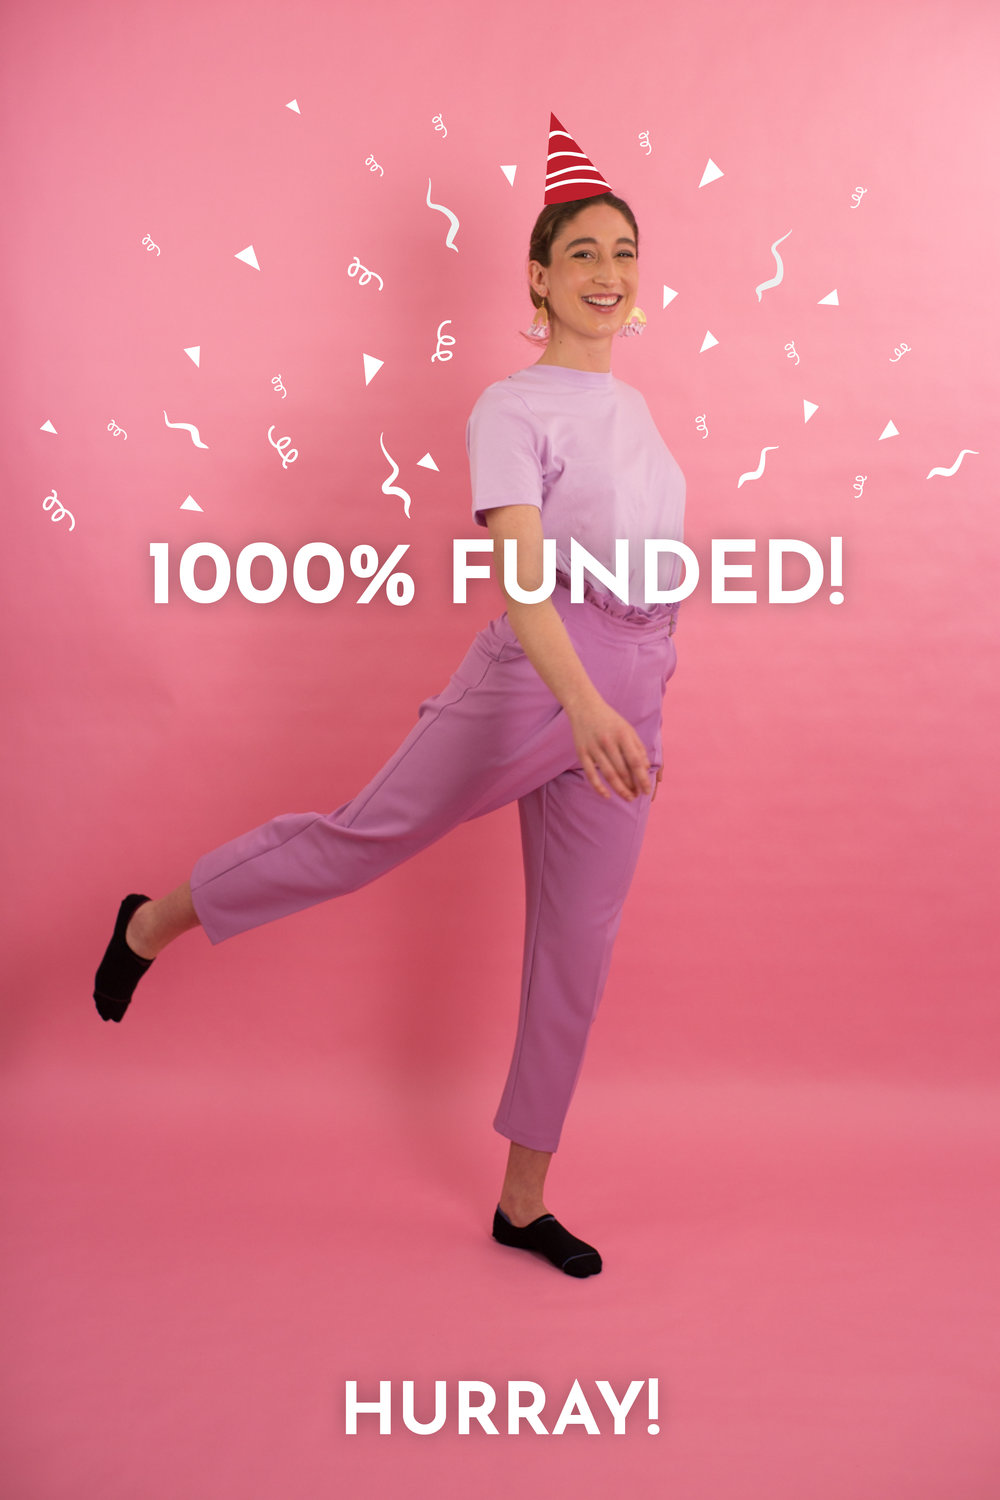 Updates_1000% funded.jpg